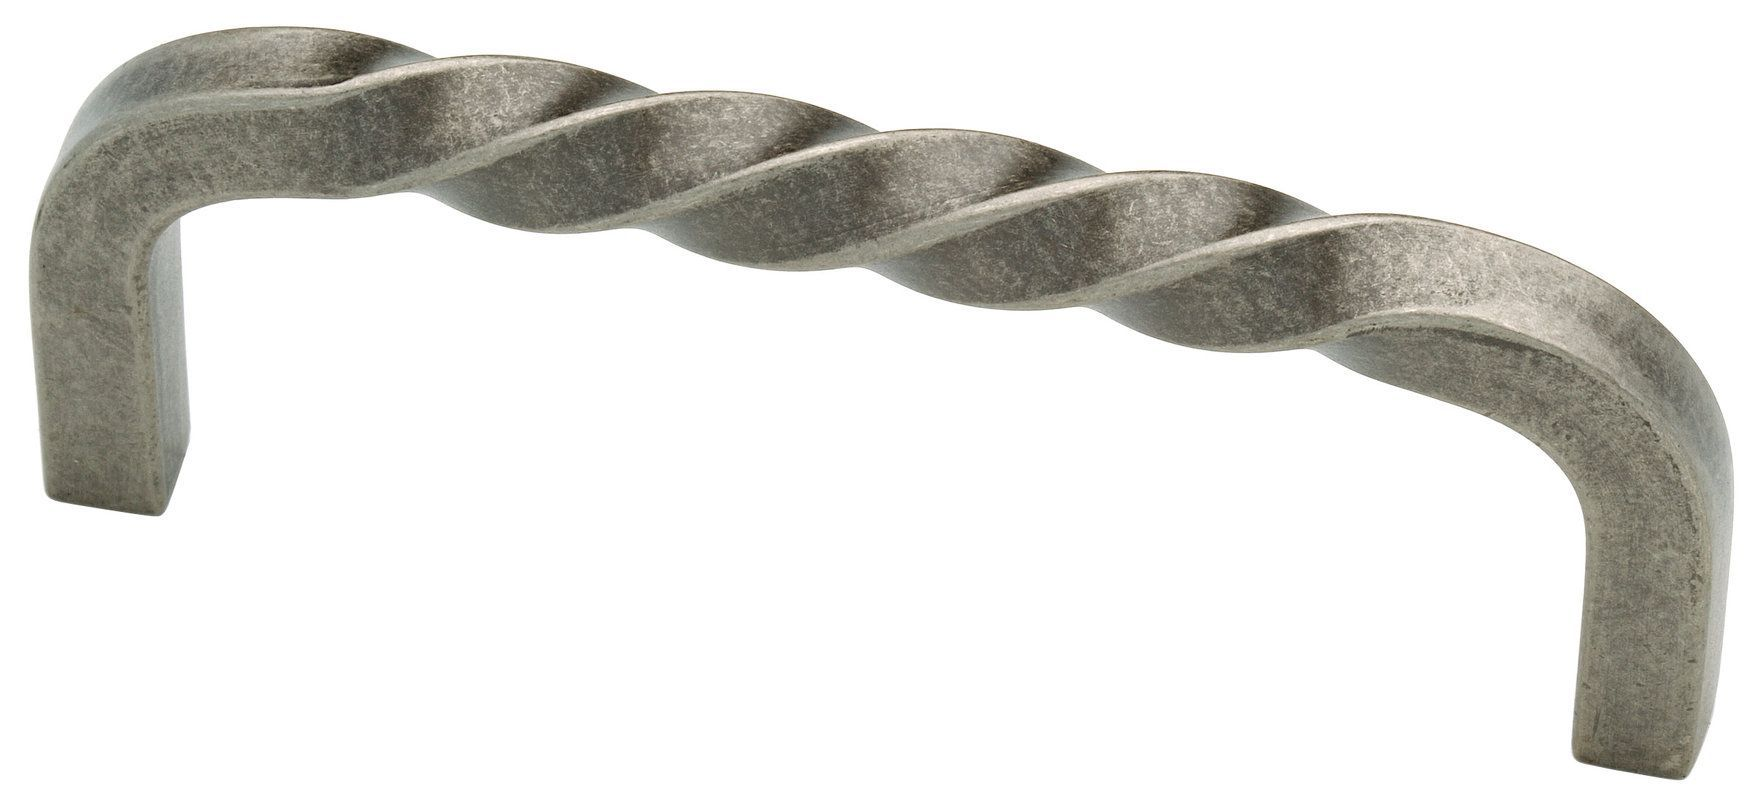 Liberty Hardware 65214 Avante Iron Craft 3-3/4 Inch Center to Center Handle Cabi Tumbled Pewter Cabinet Hardware Pulls Handle